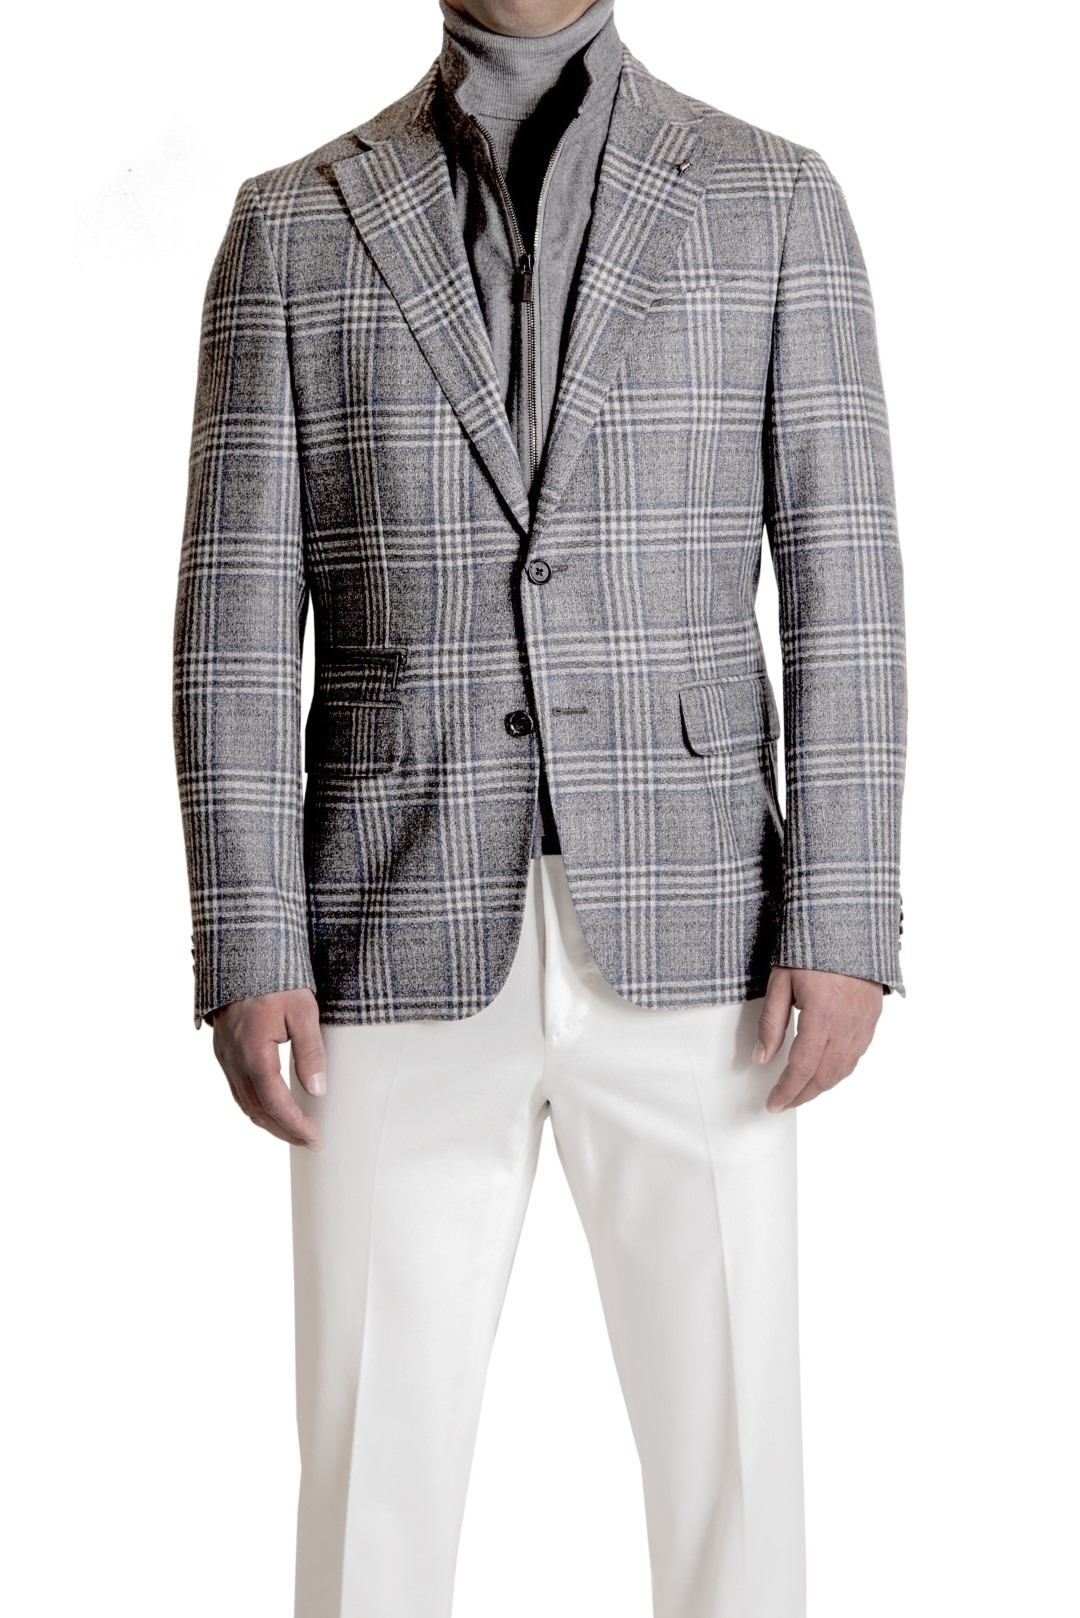 CC COLLECTION CORNELIANI JACKET, PAL ZILERI TROUSER, CORTIGIANI PULLOVER